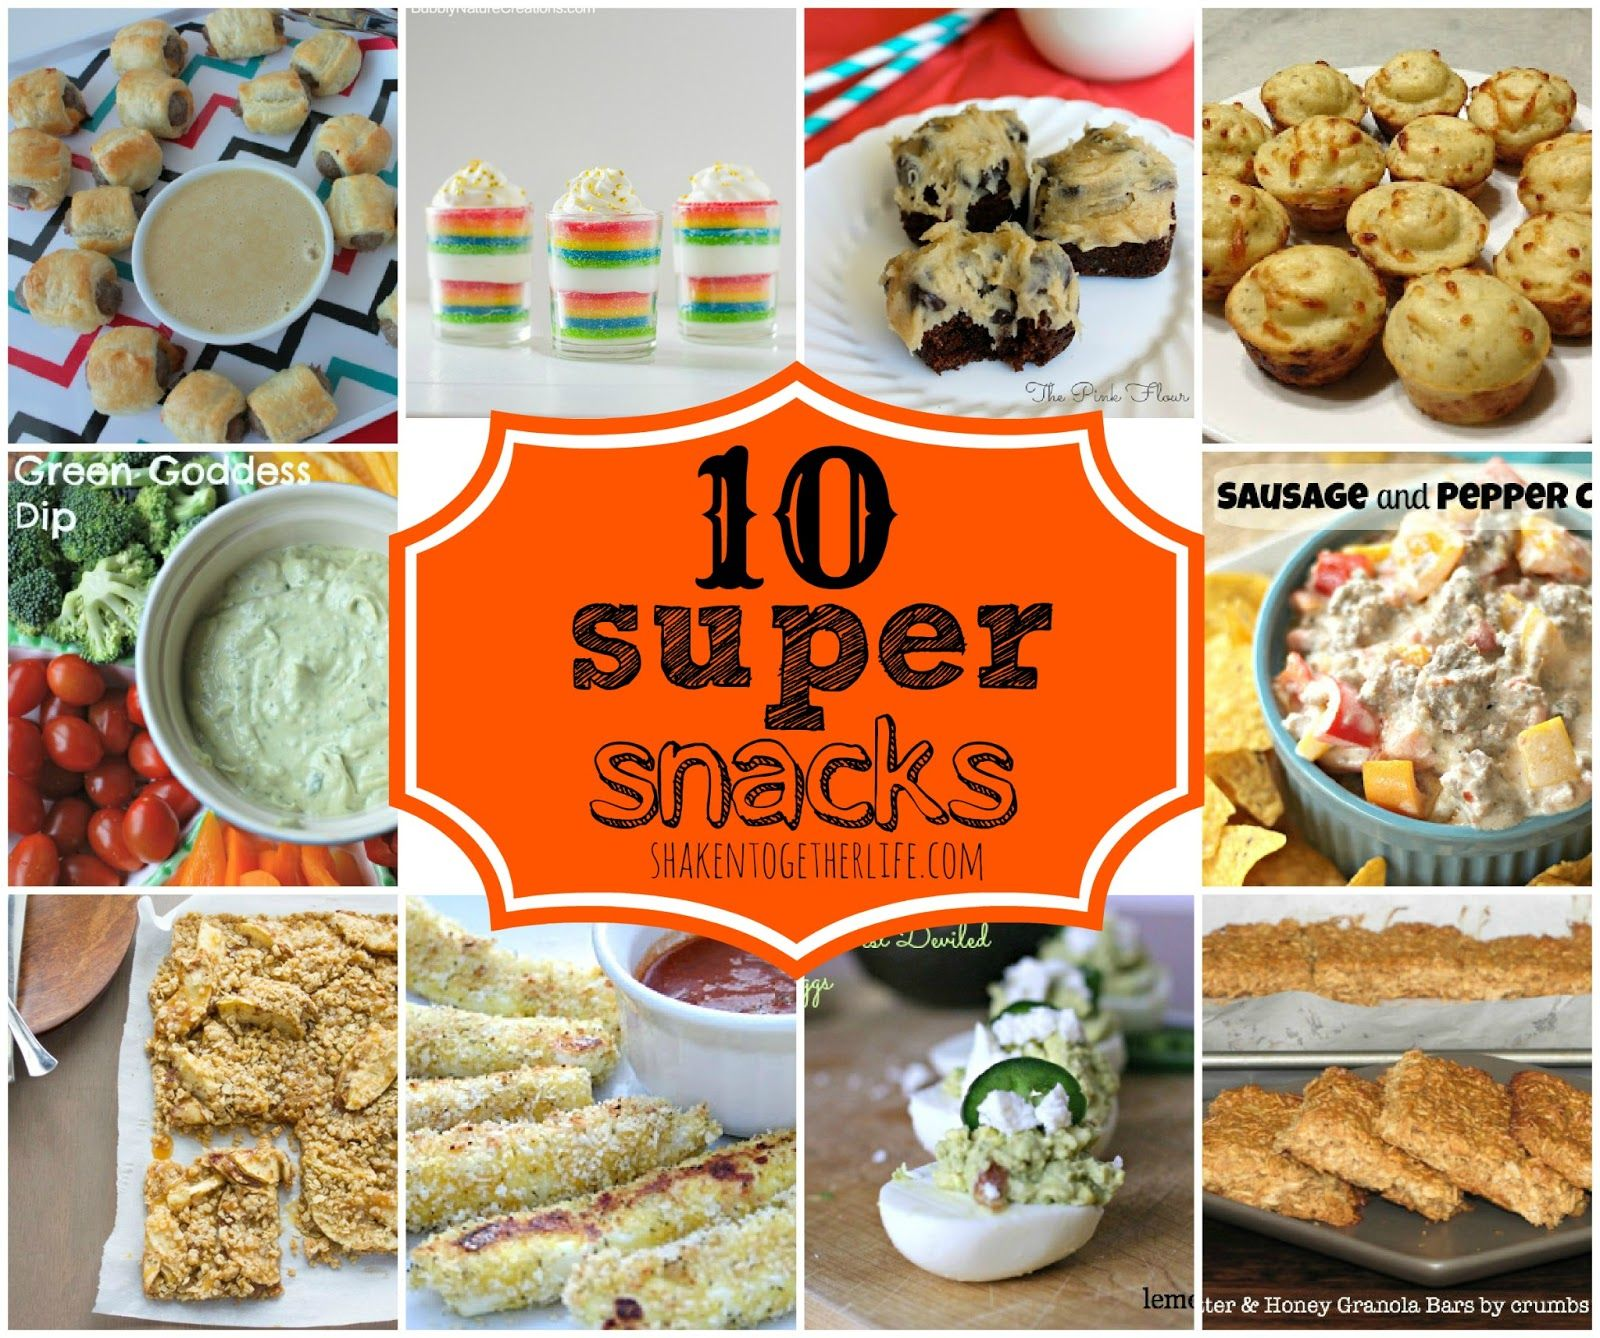 Ten Snack Ideas for Parties and Yummy Munching!